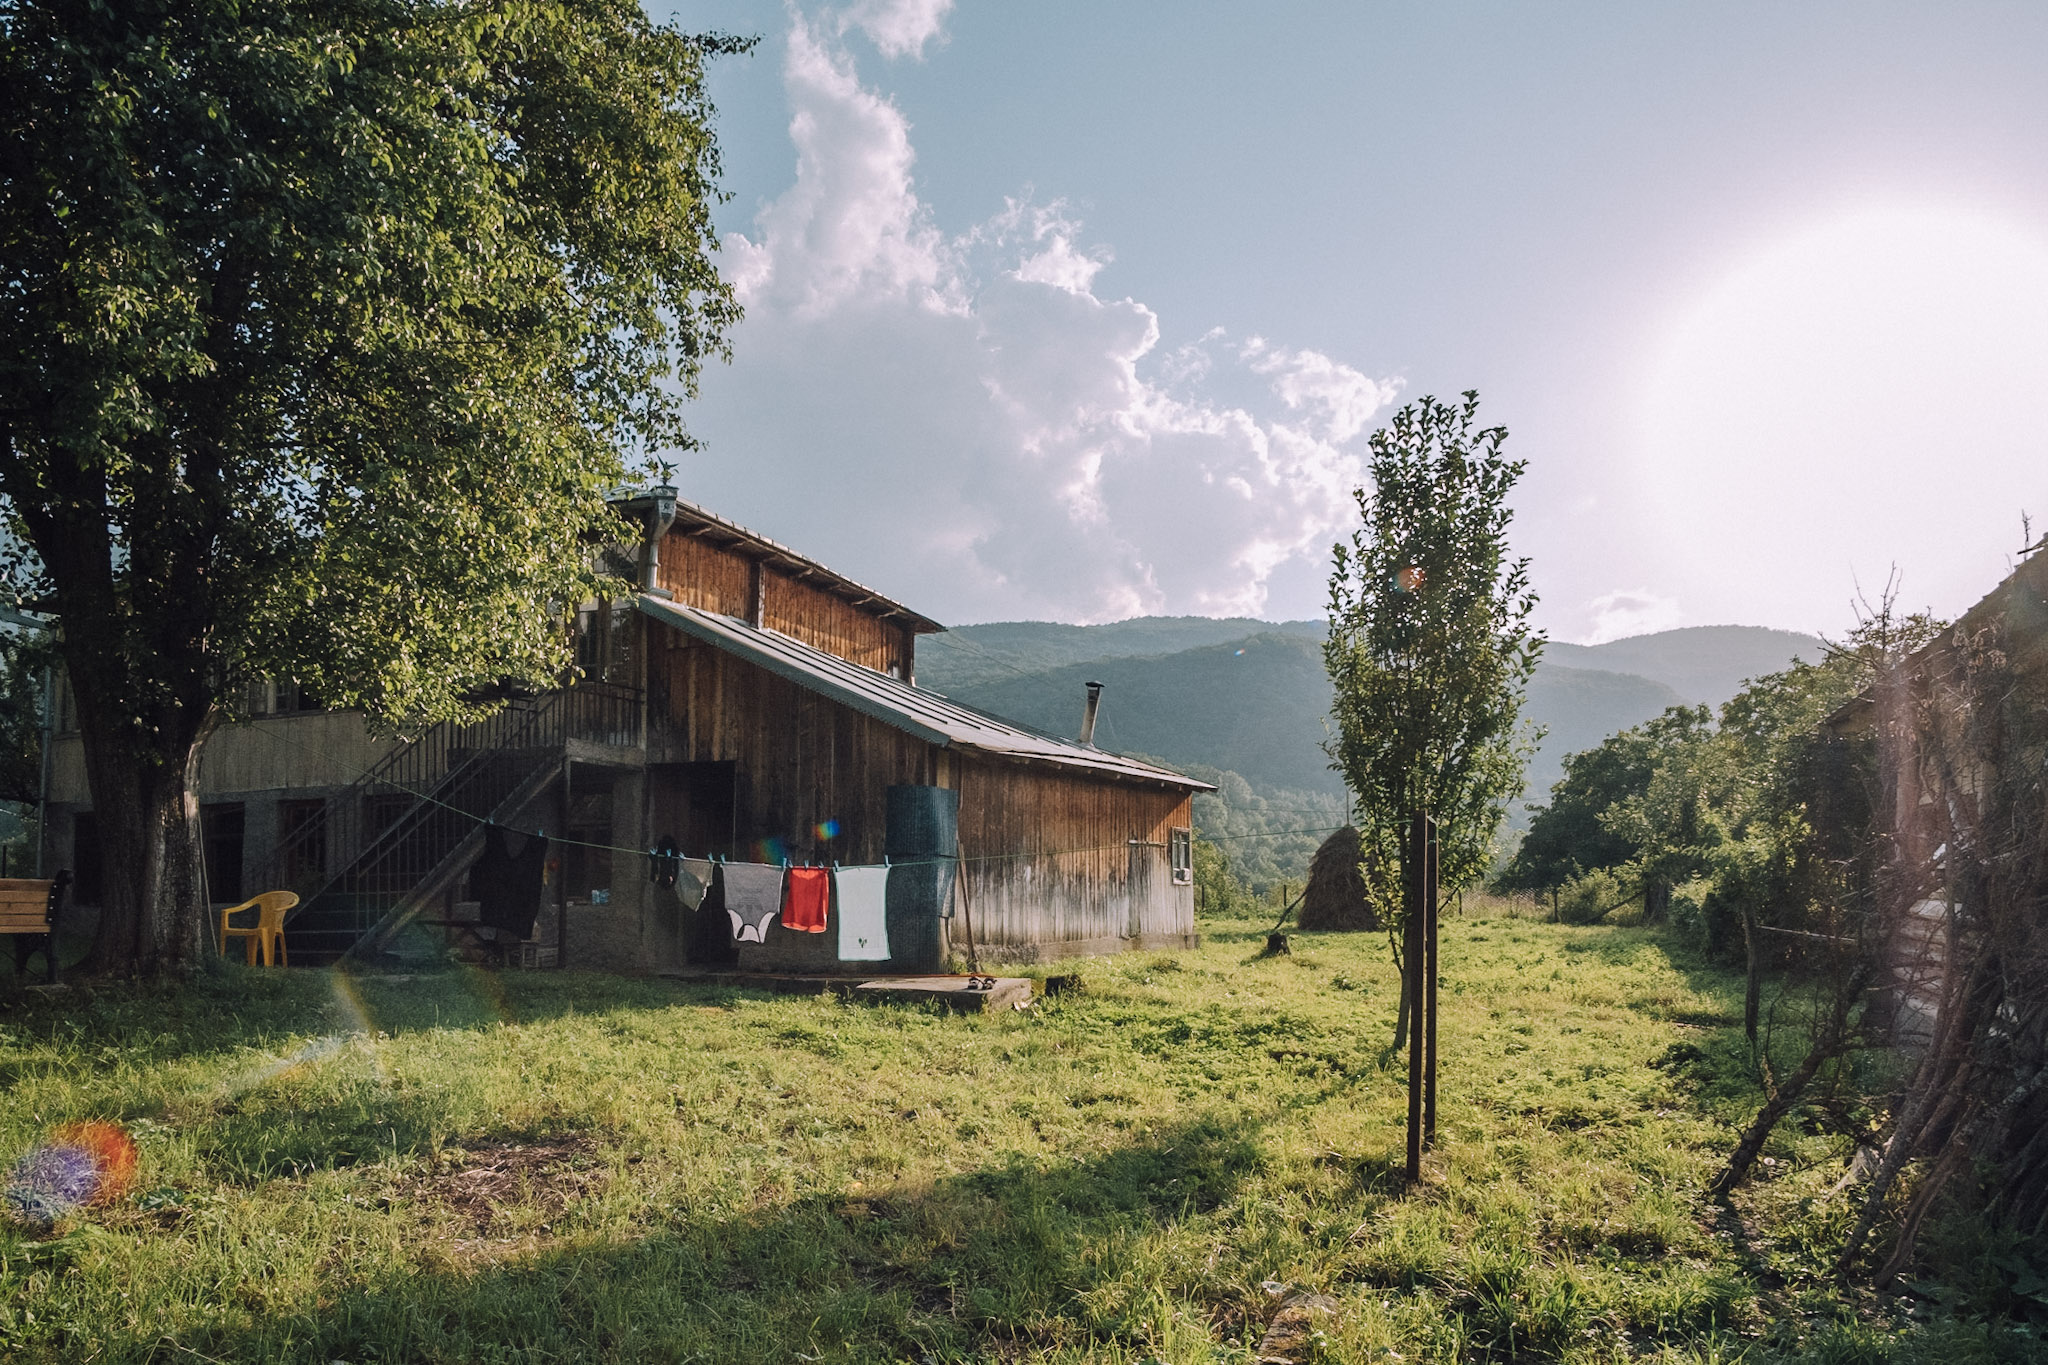 A Georgian farmhouse is set against a mountain range on a sunny day in this  landscape photo by Dimitri Mais